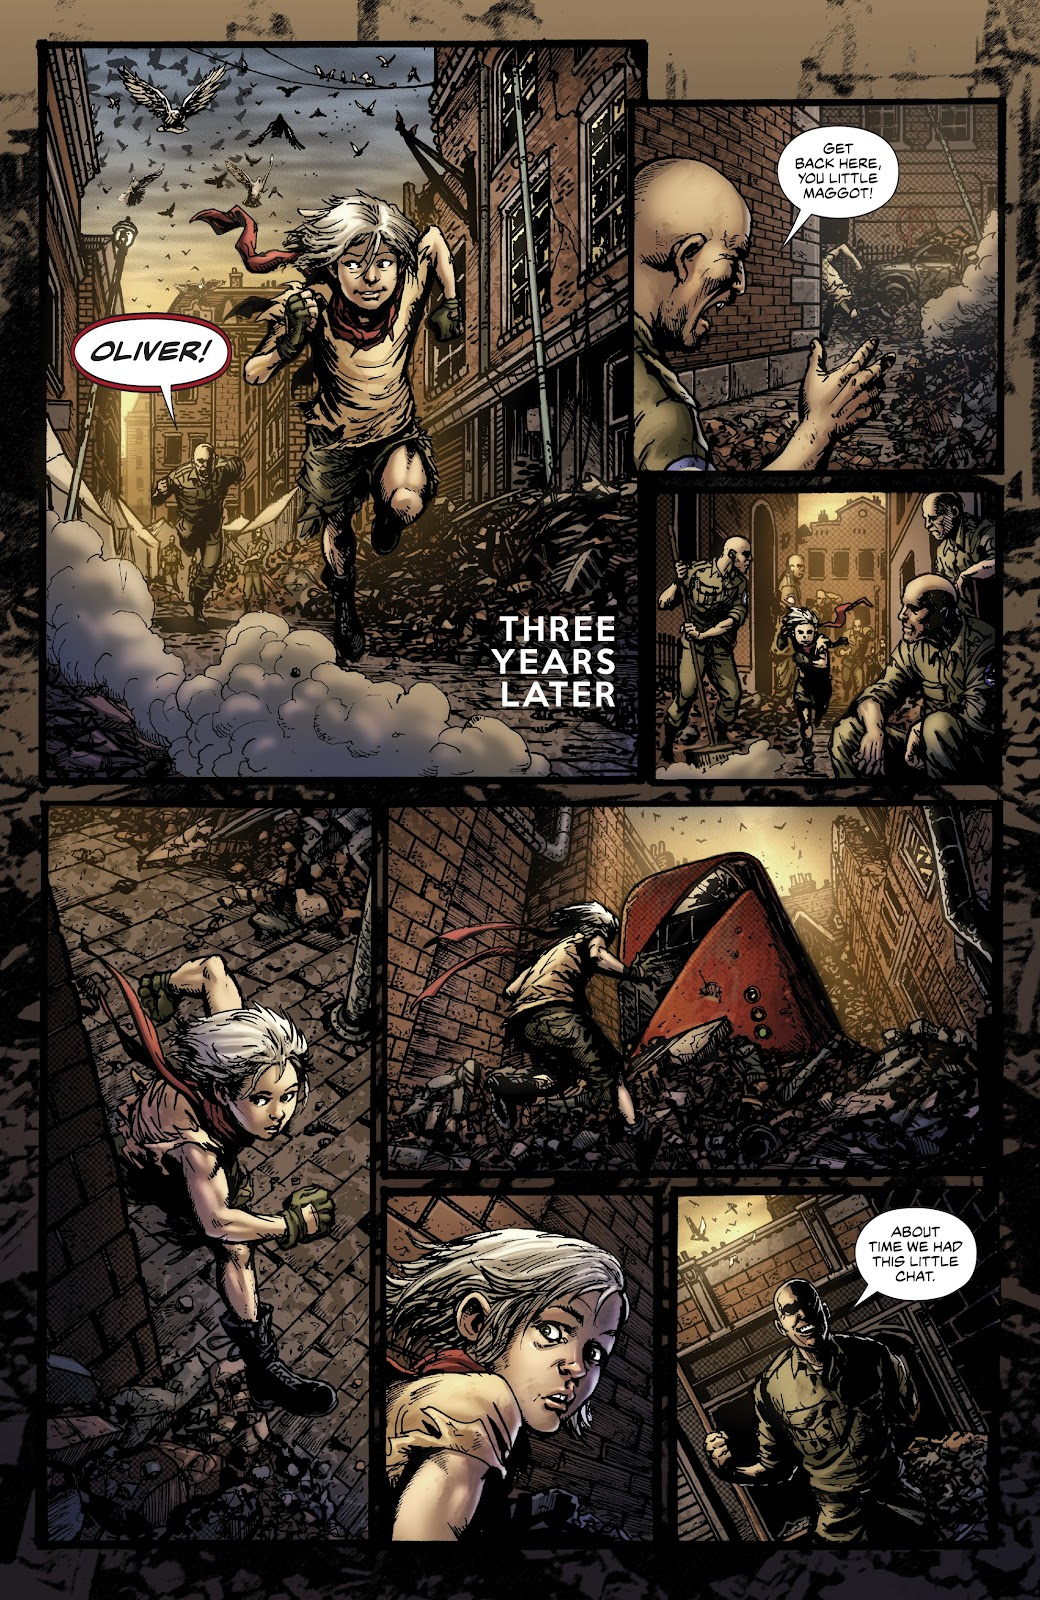 Read online Oliver comic -  Issue #1 - 13